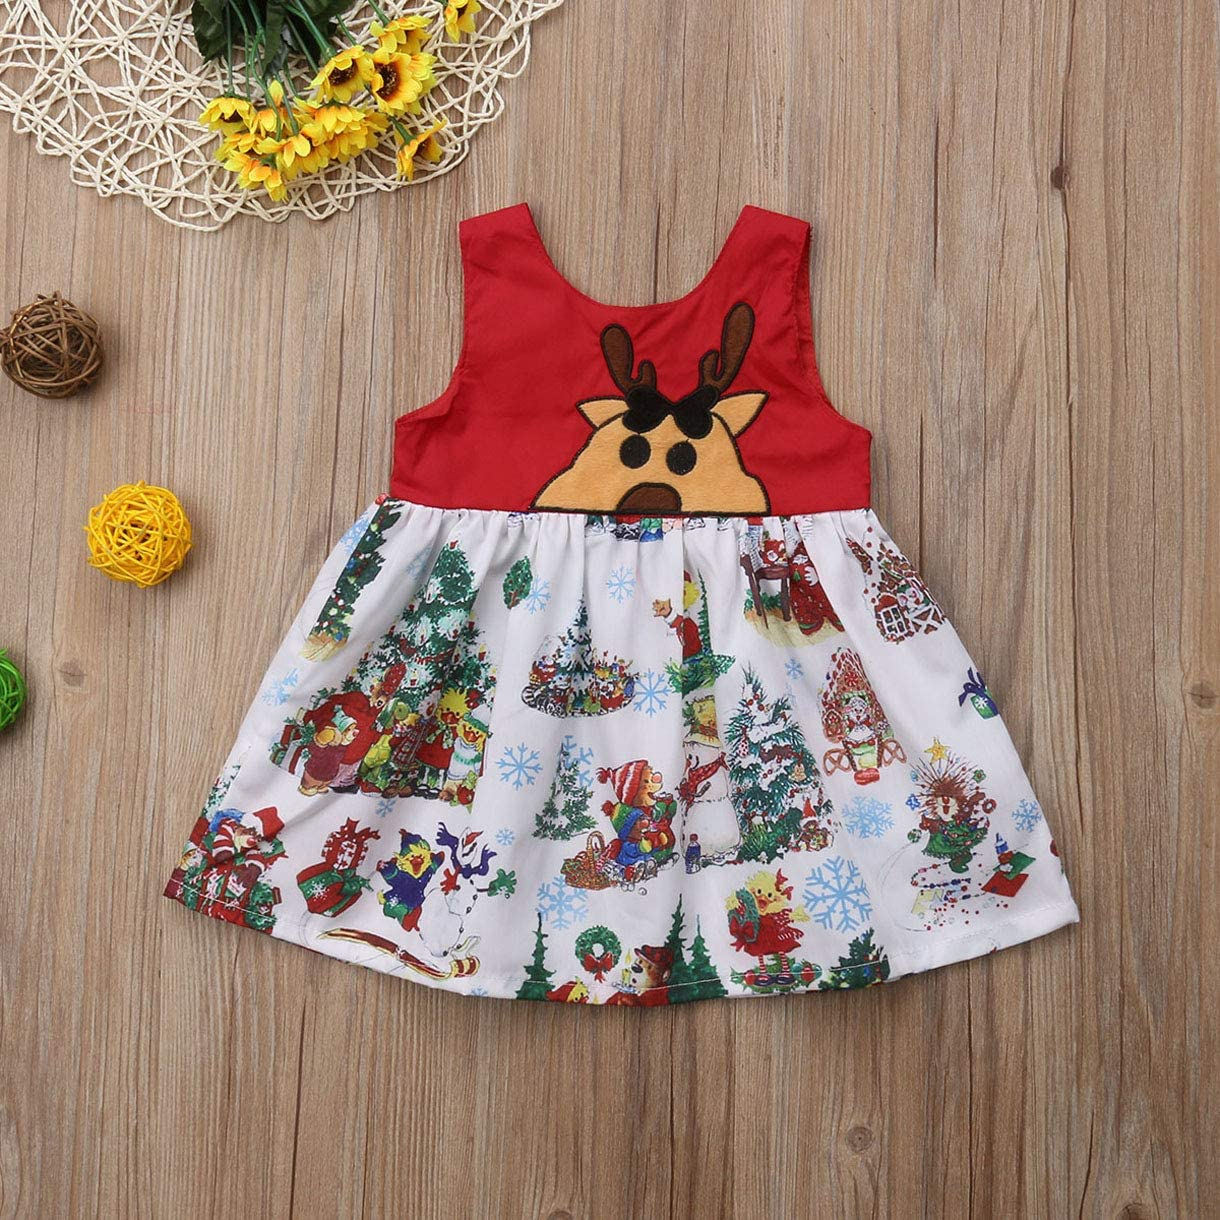 Qinngsha Newborn Kid Baby Girl Infant Tutu Dress Outfit Christmas Party Cute Clothes Infant Toddler Baby Kid Elk Xmas Party Tutu Princess Dress Sundress Clothes